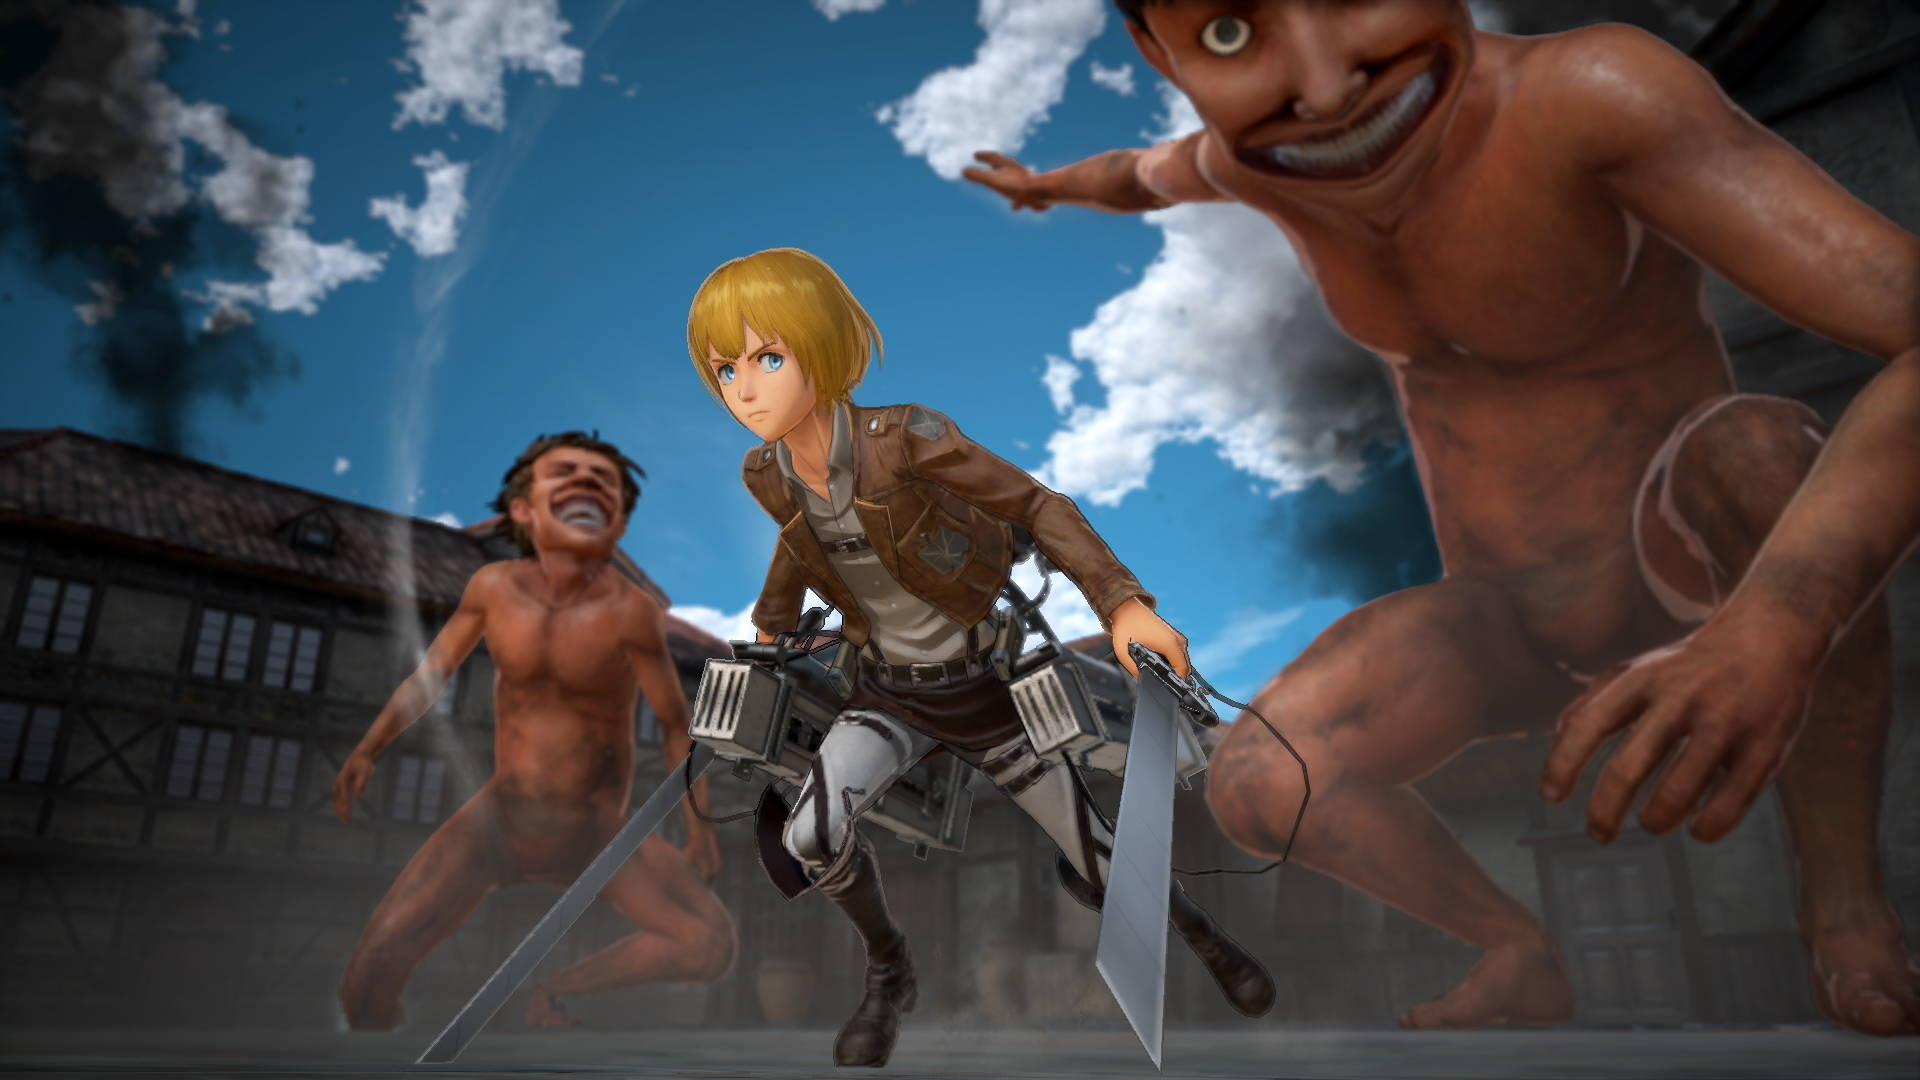 aot2_images2_0002